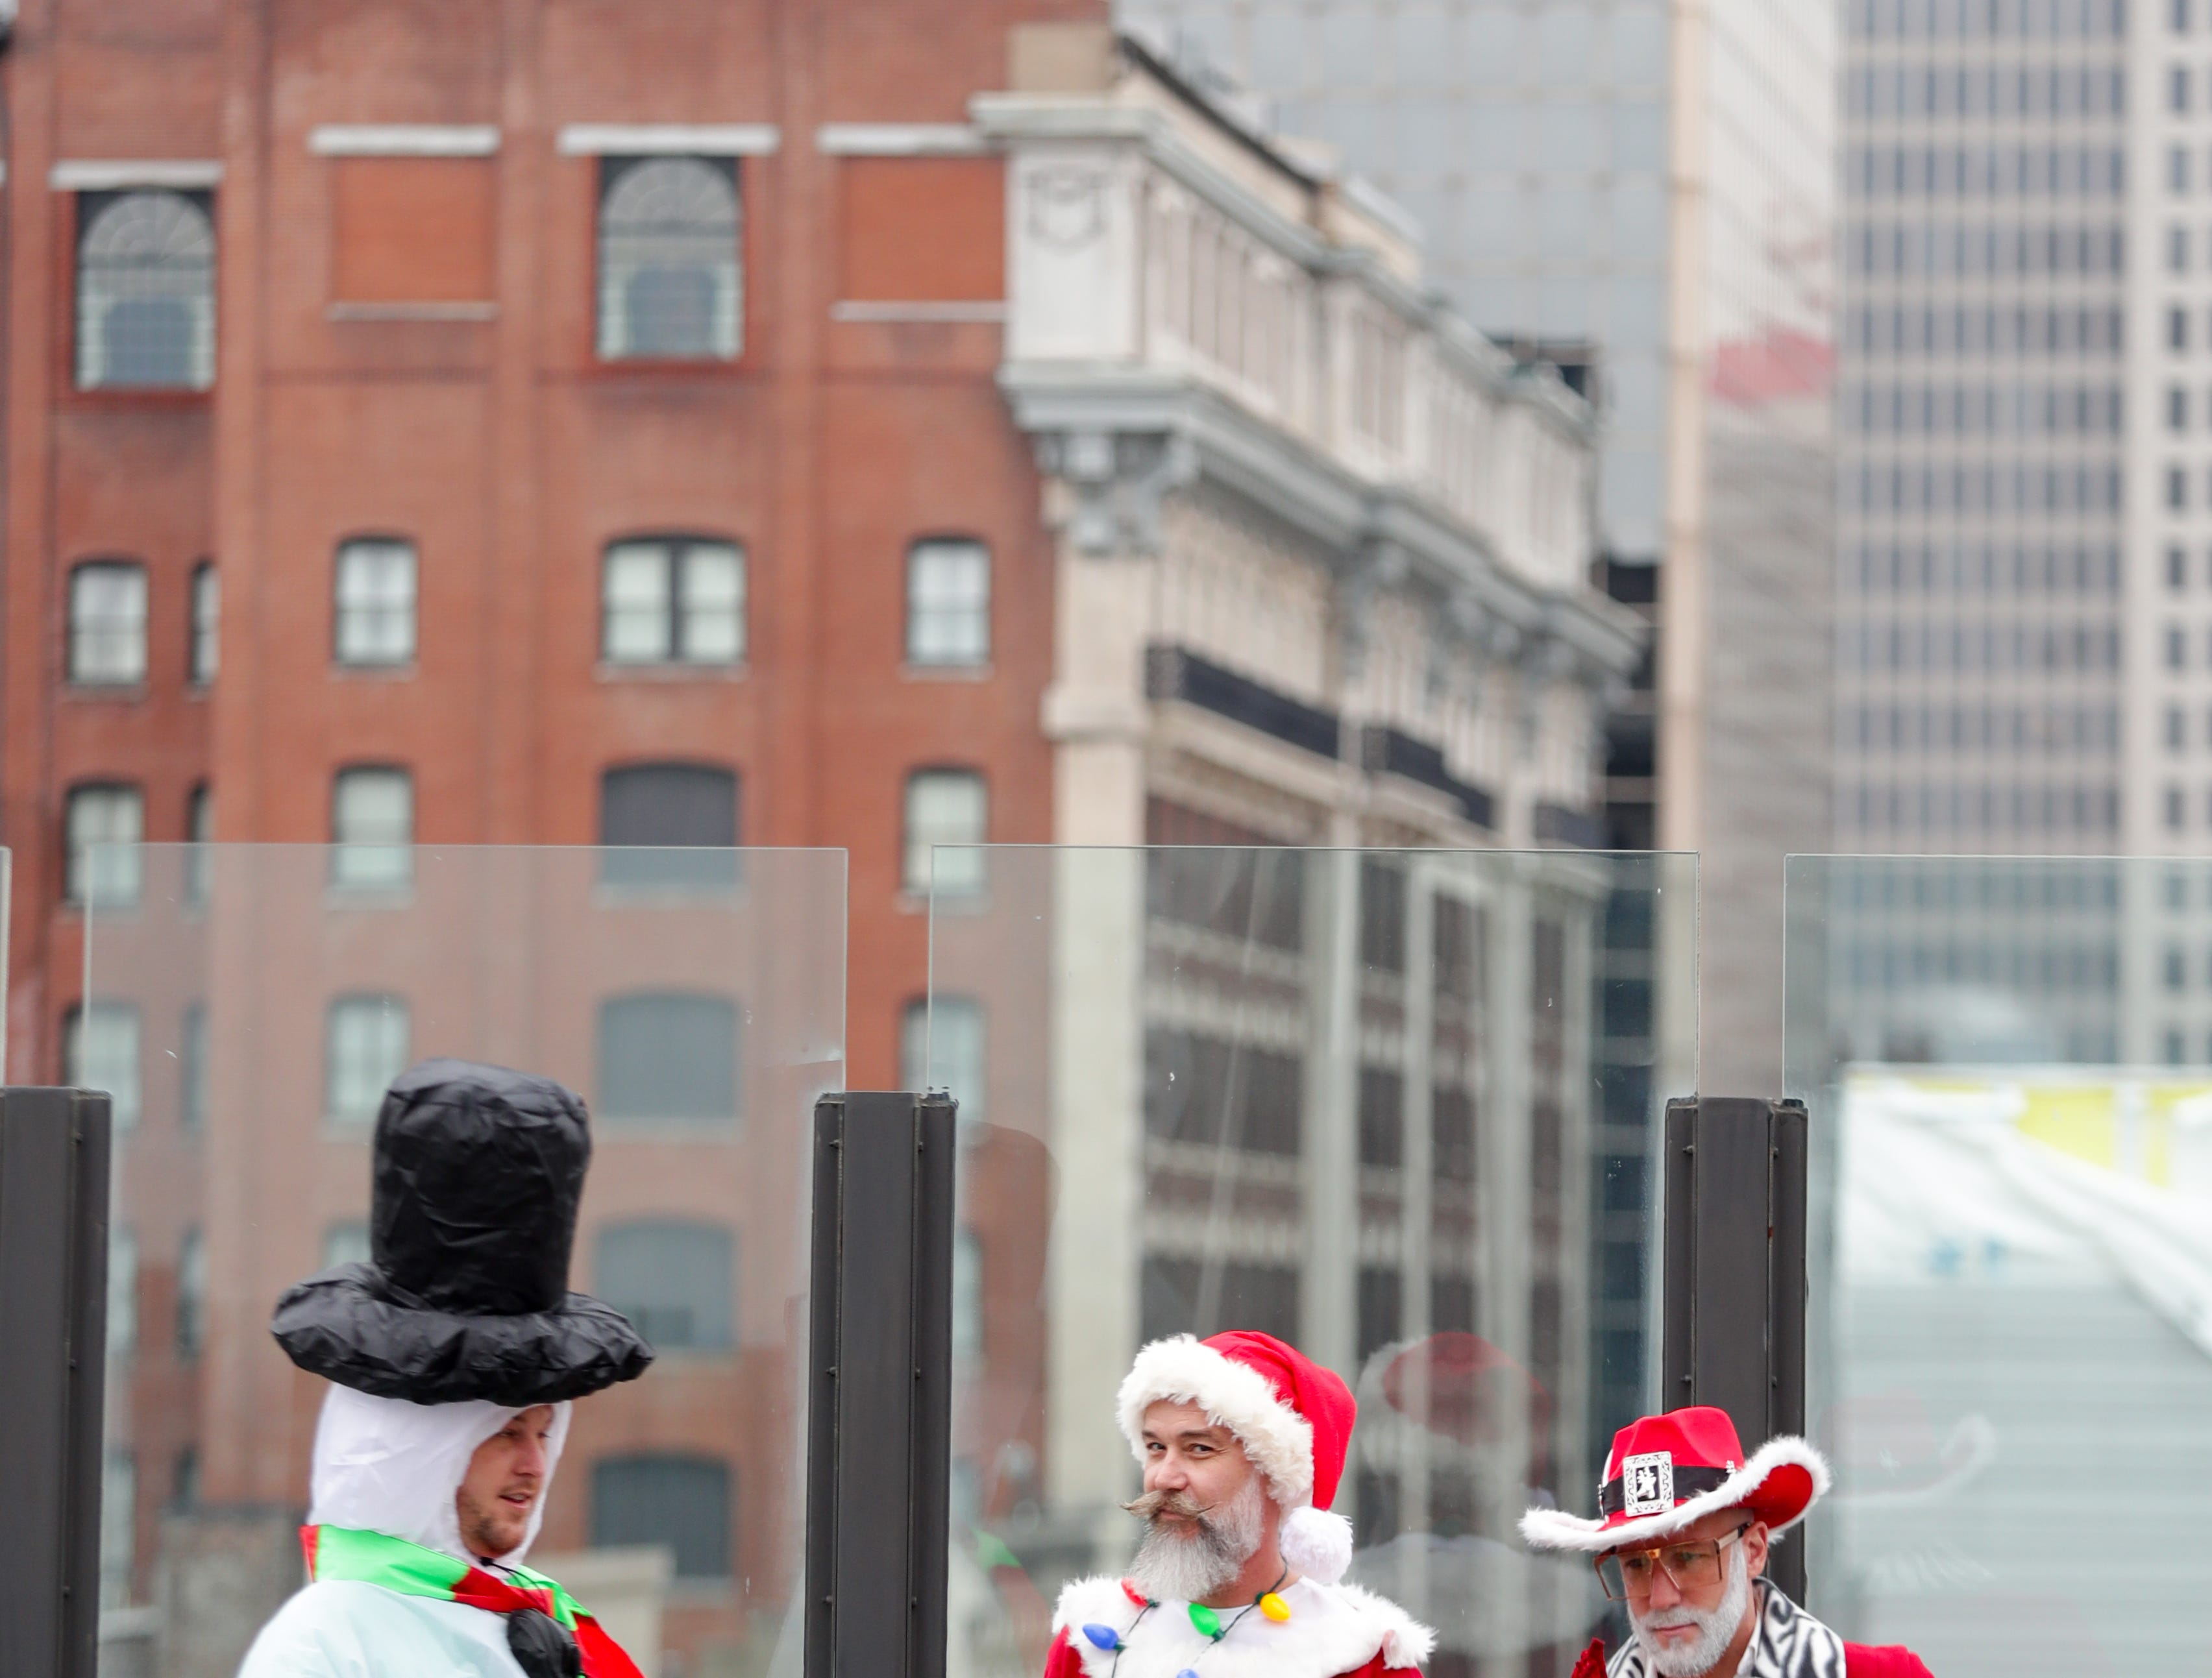 The crowd enjoys 8 UP, the first location on the Louisville SantaCon journey. Dec. 8, 2018